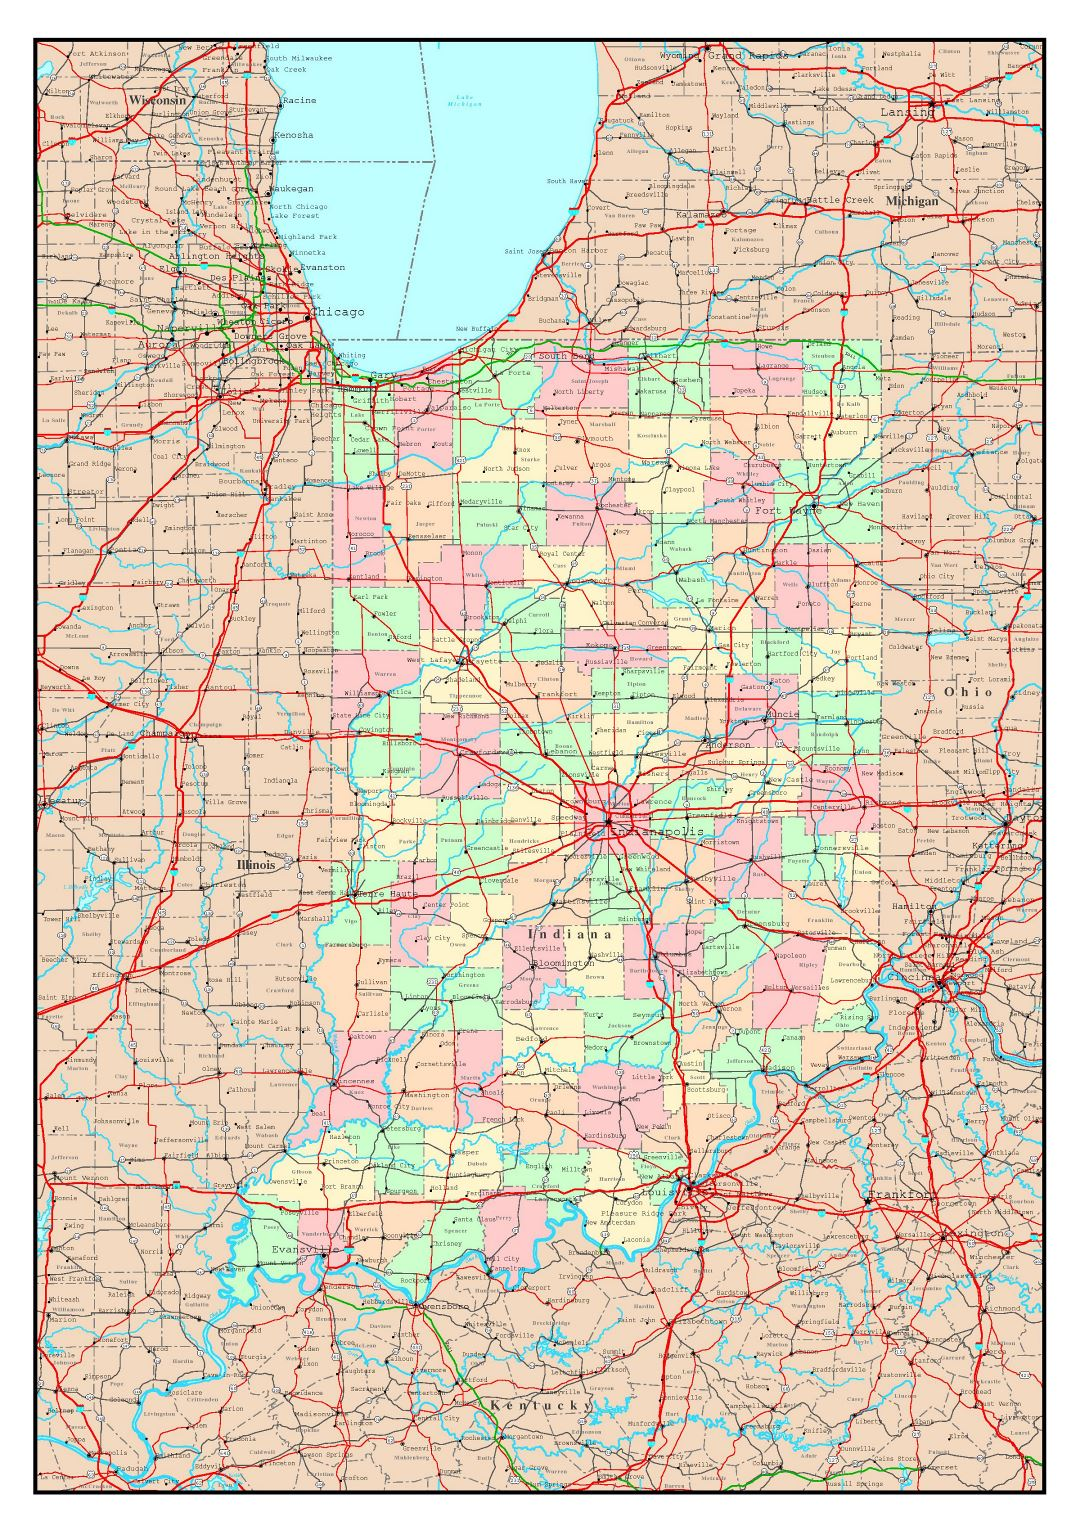 Large detailed administrative map of Indiana state with roads, highways and major cities